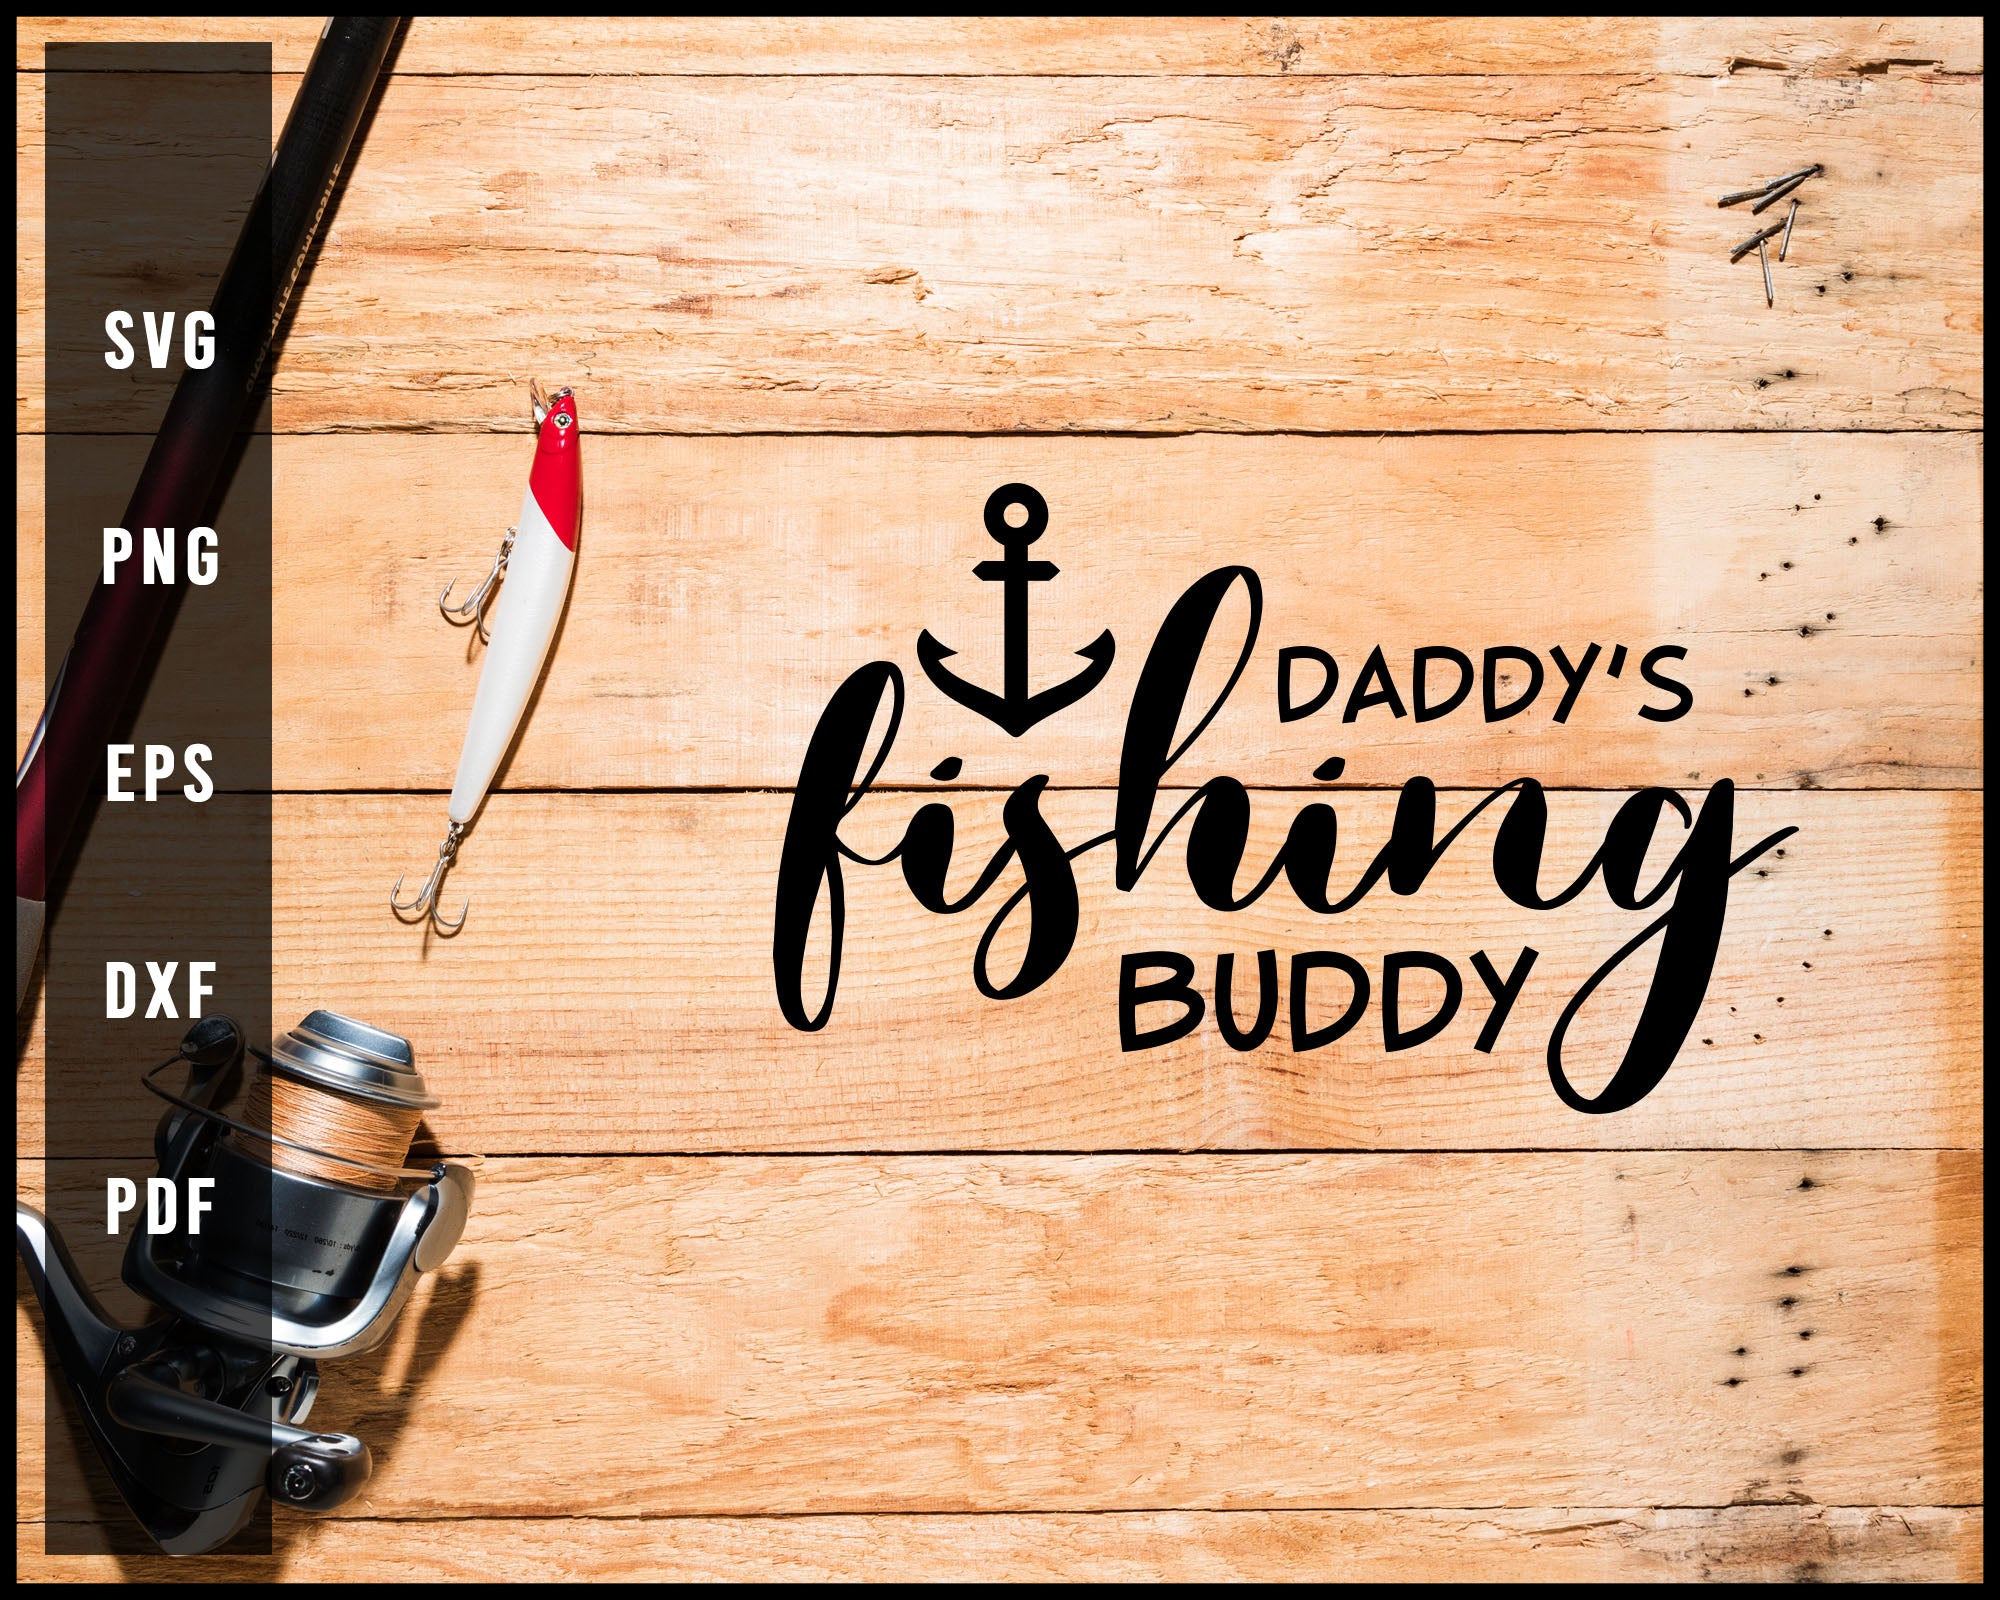 Download Dady S Fishing Buddy Svg Png Silhouette Designs For Cricut And Printab Creativedesignmaker